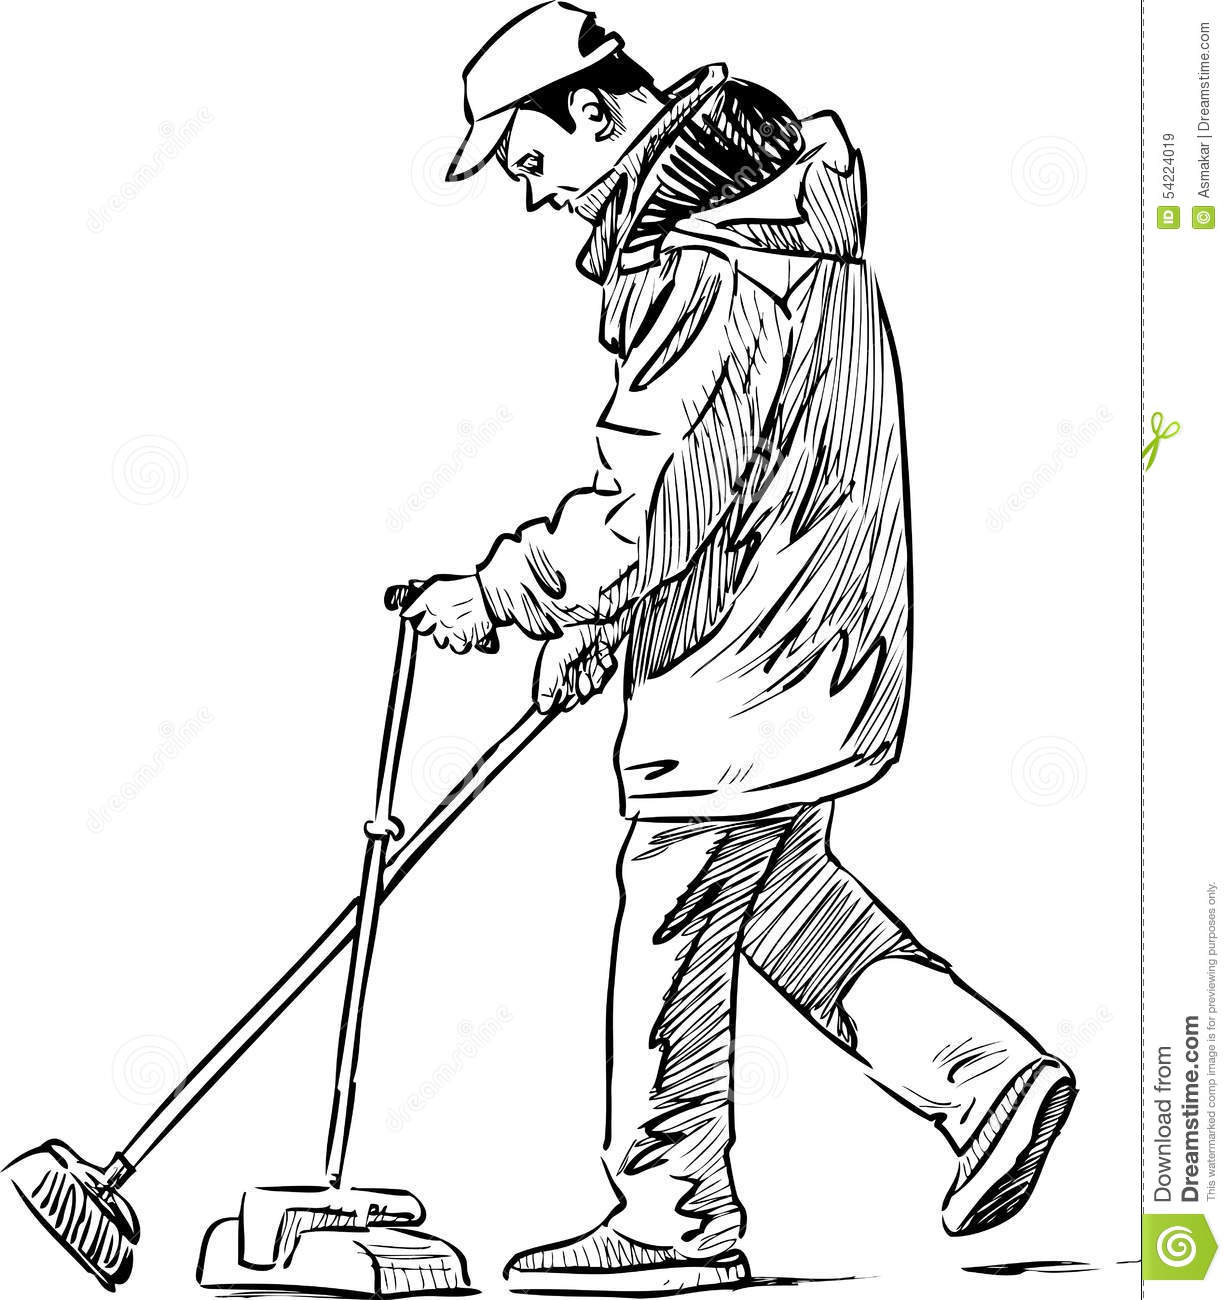 Cleaner on a city street stock vector. Illustration of